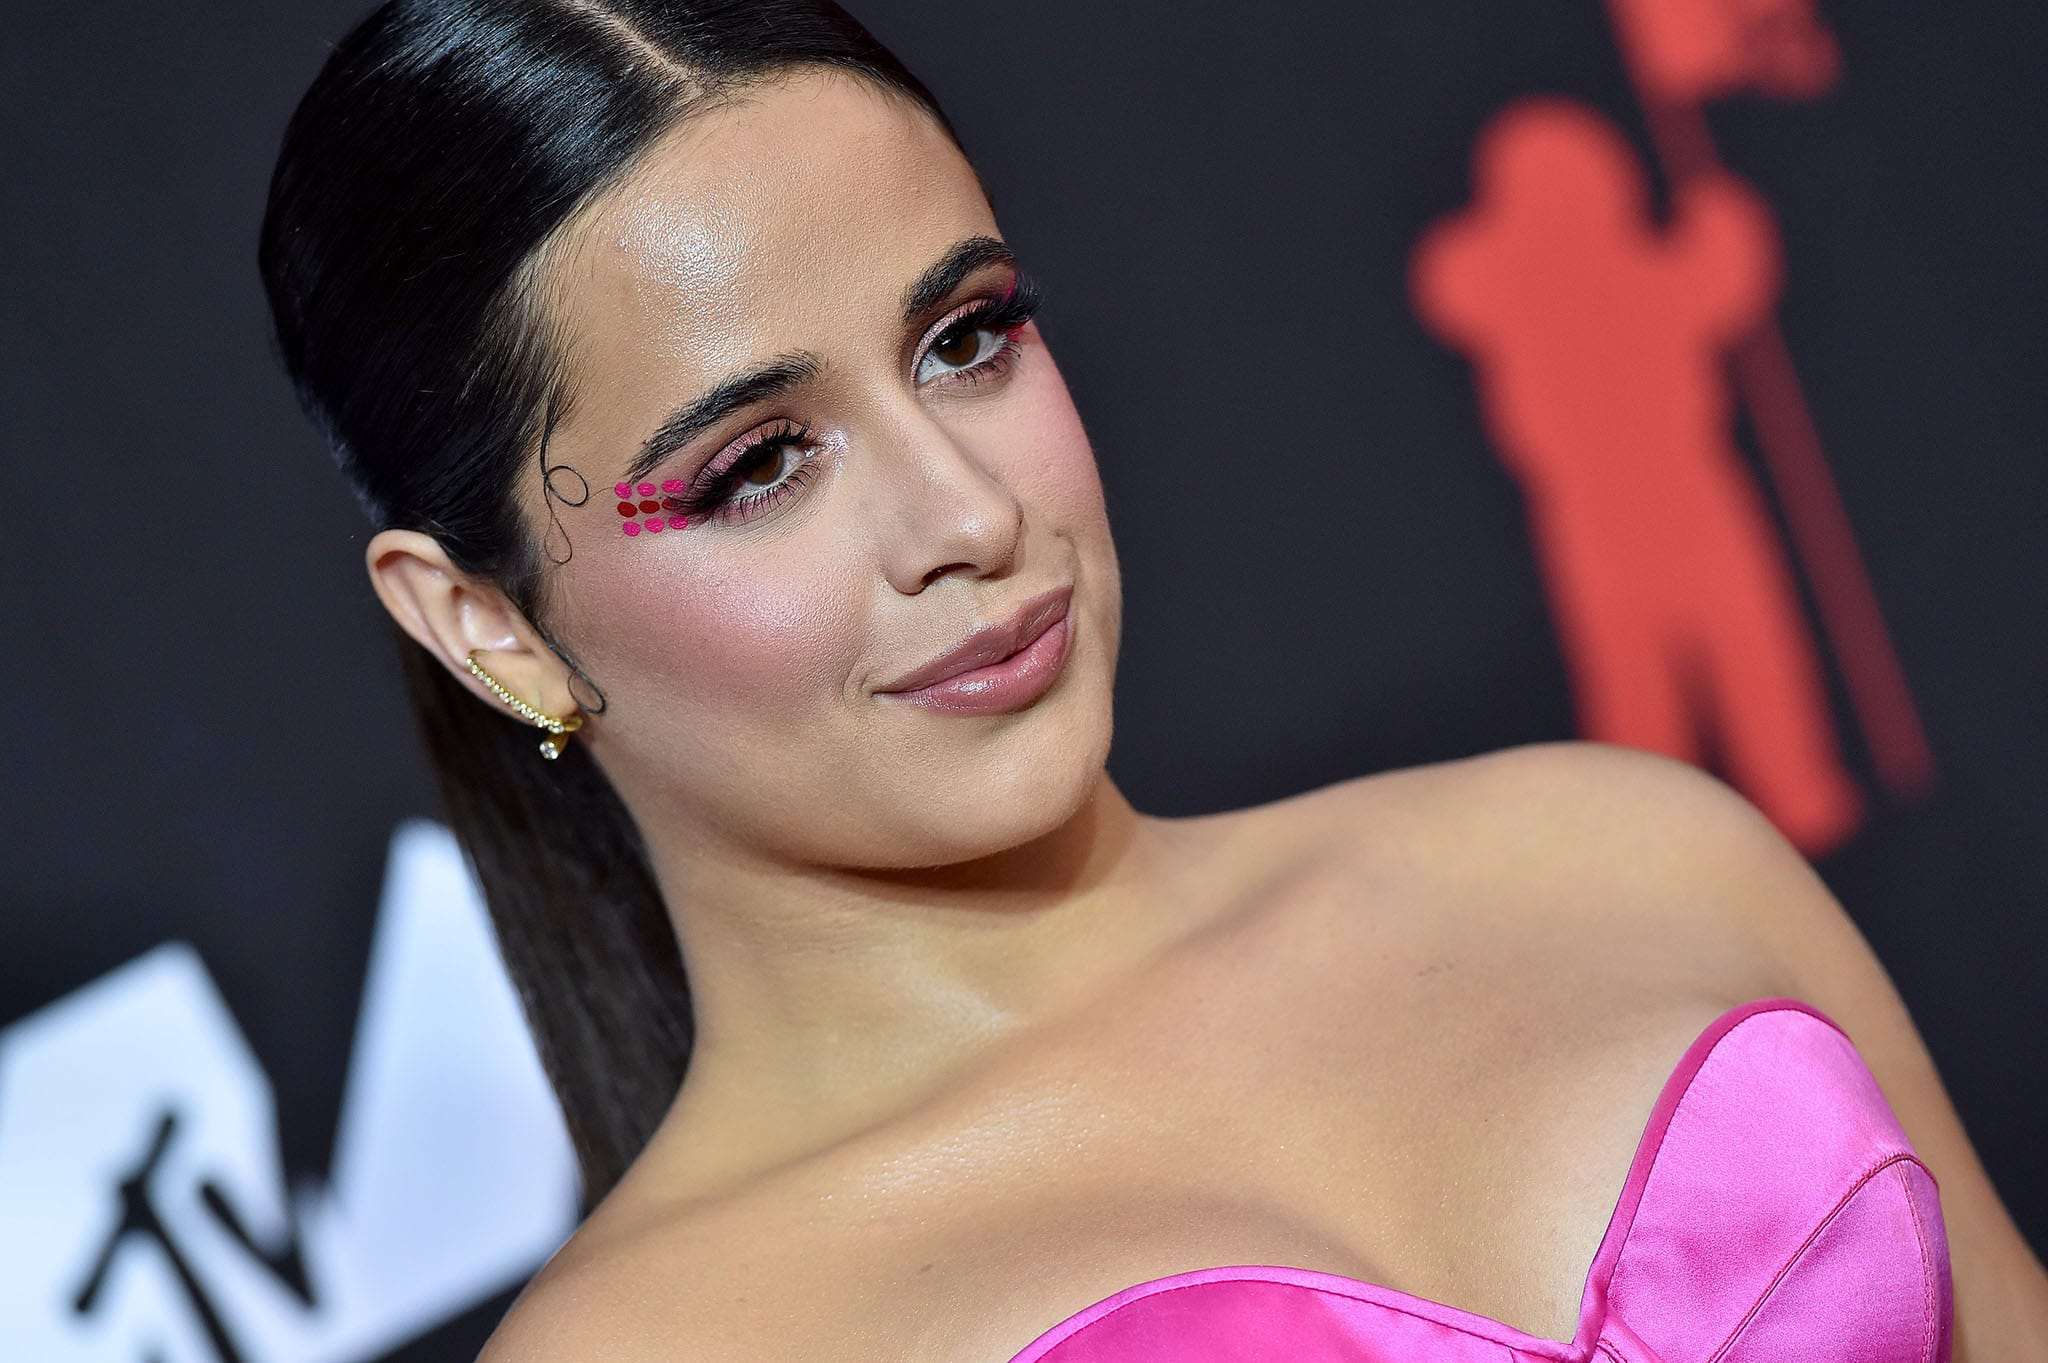 Camila Cabello wears a long, center-parted ponytail and bold makeup with colorful dots on the corner of her eyes